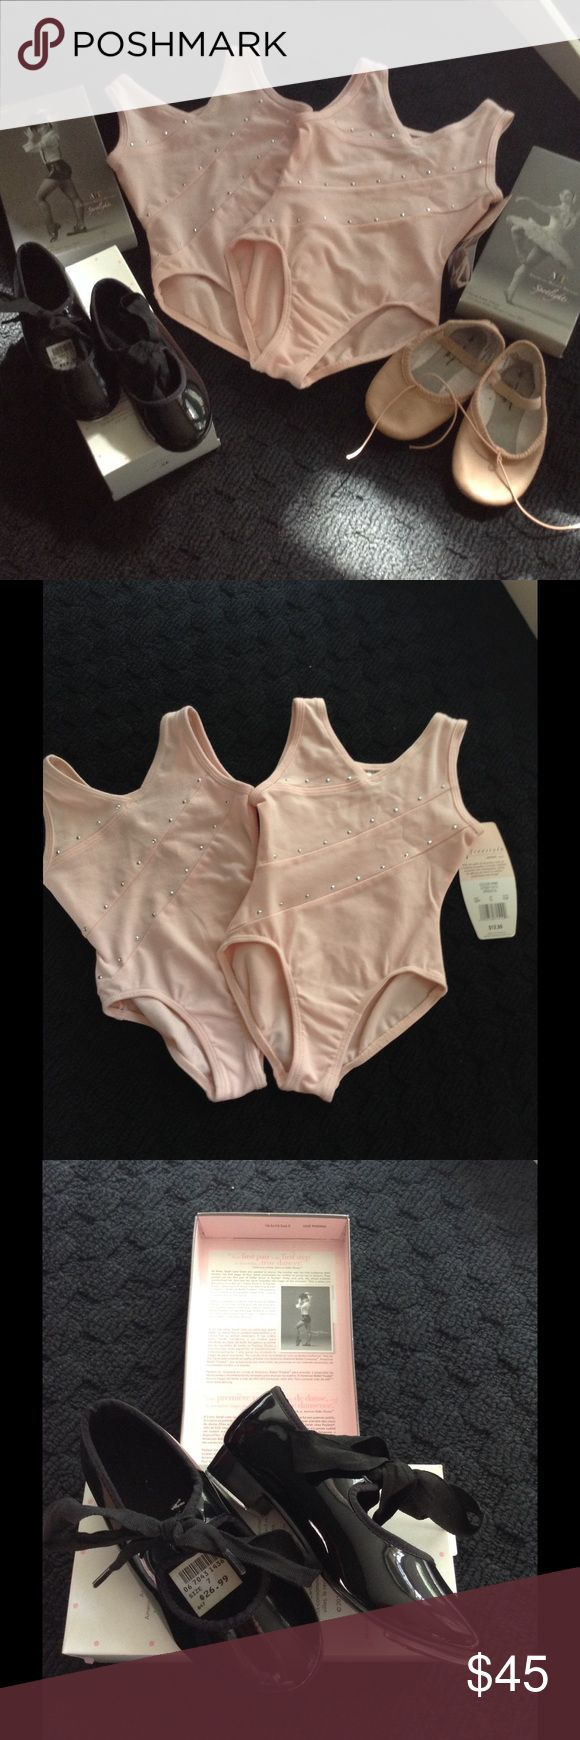 4pcs Bundle of dance gear for toddler 2leotards size xxs 2/3 t one NWT one gently used. Black tap shoes size 7. Ballet shoes size 8 American ballet theatre Other